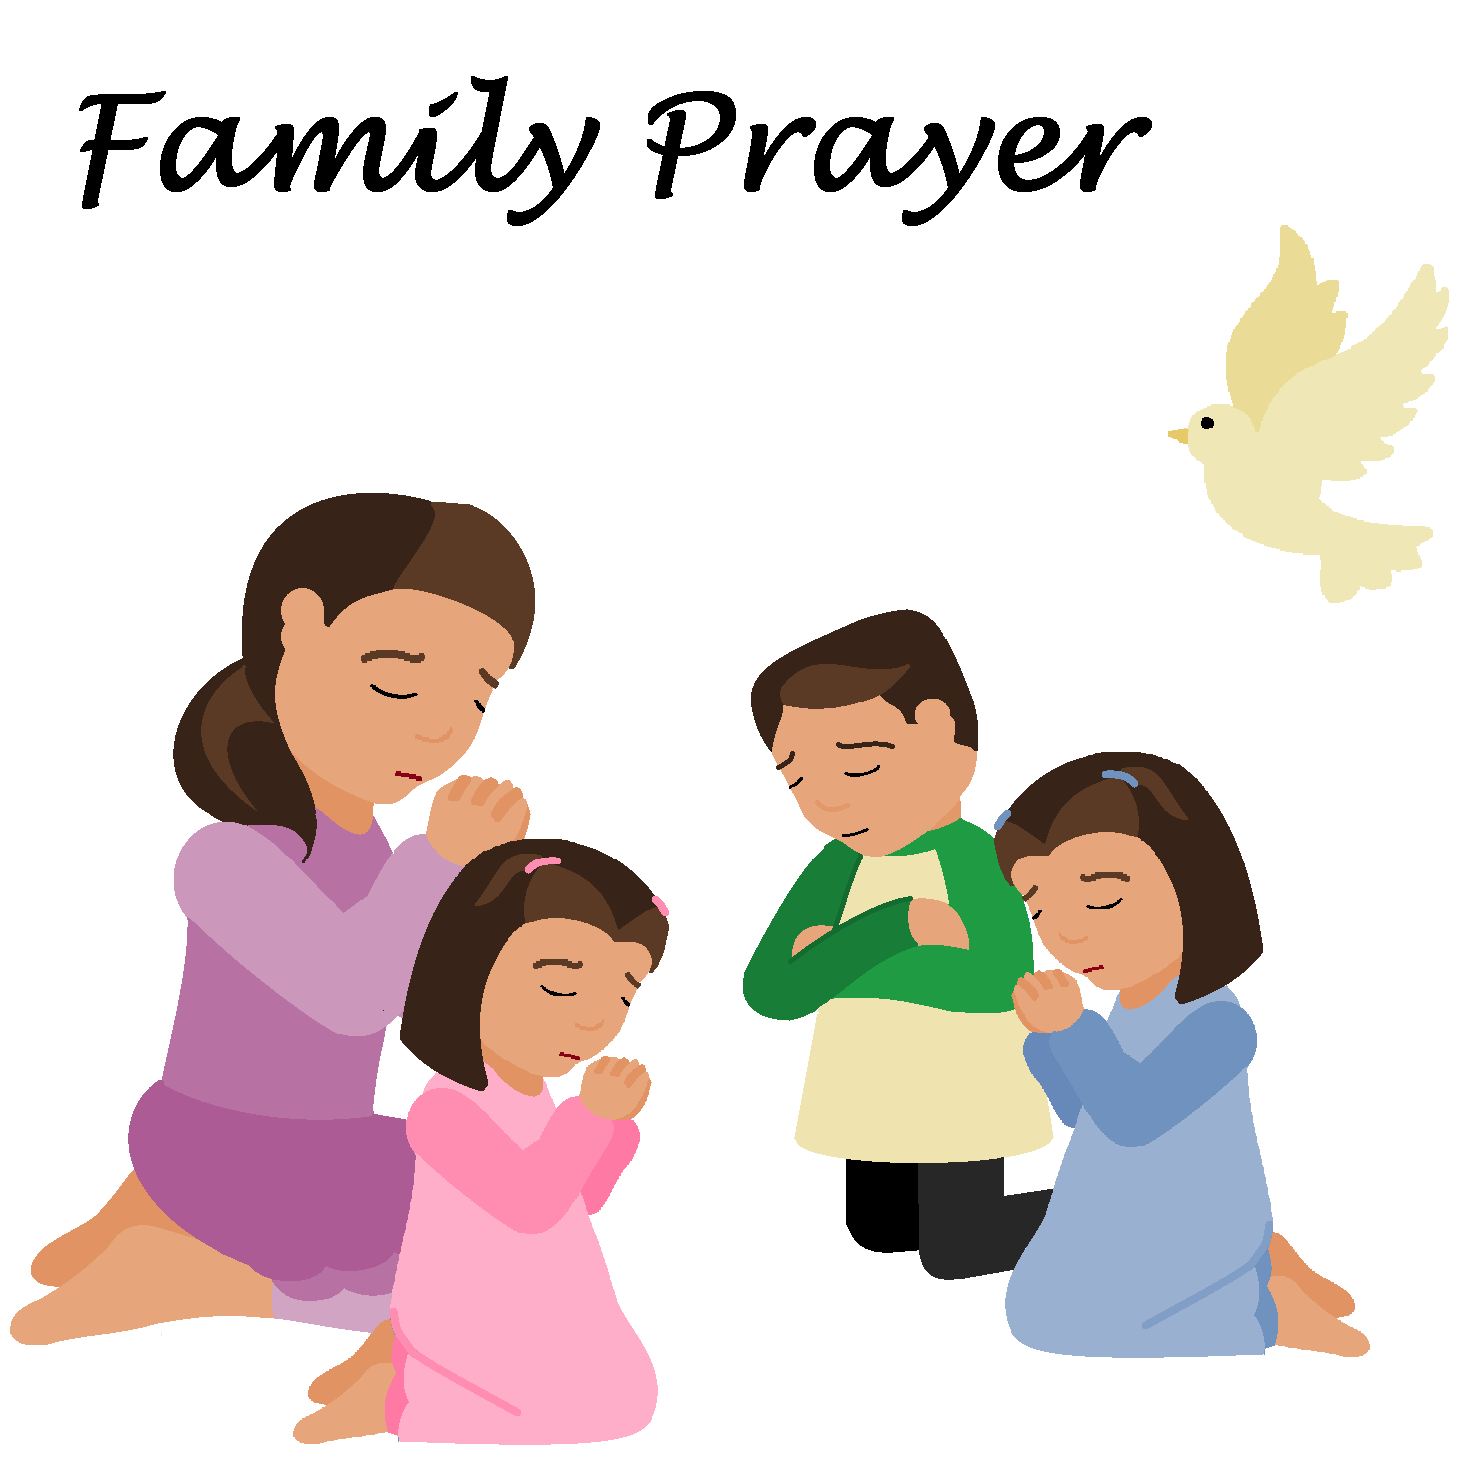 Children Praying In Church Clipart Or Family Prayer P189